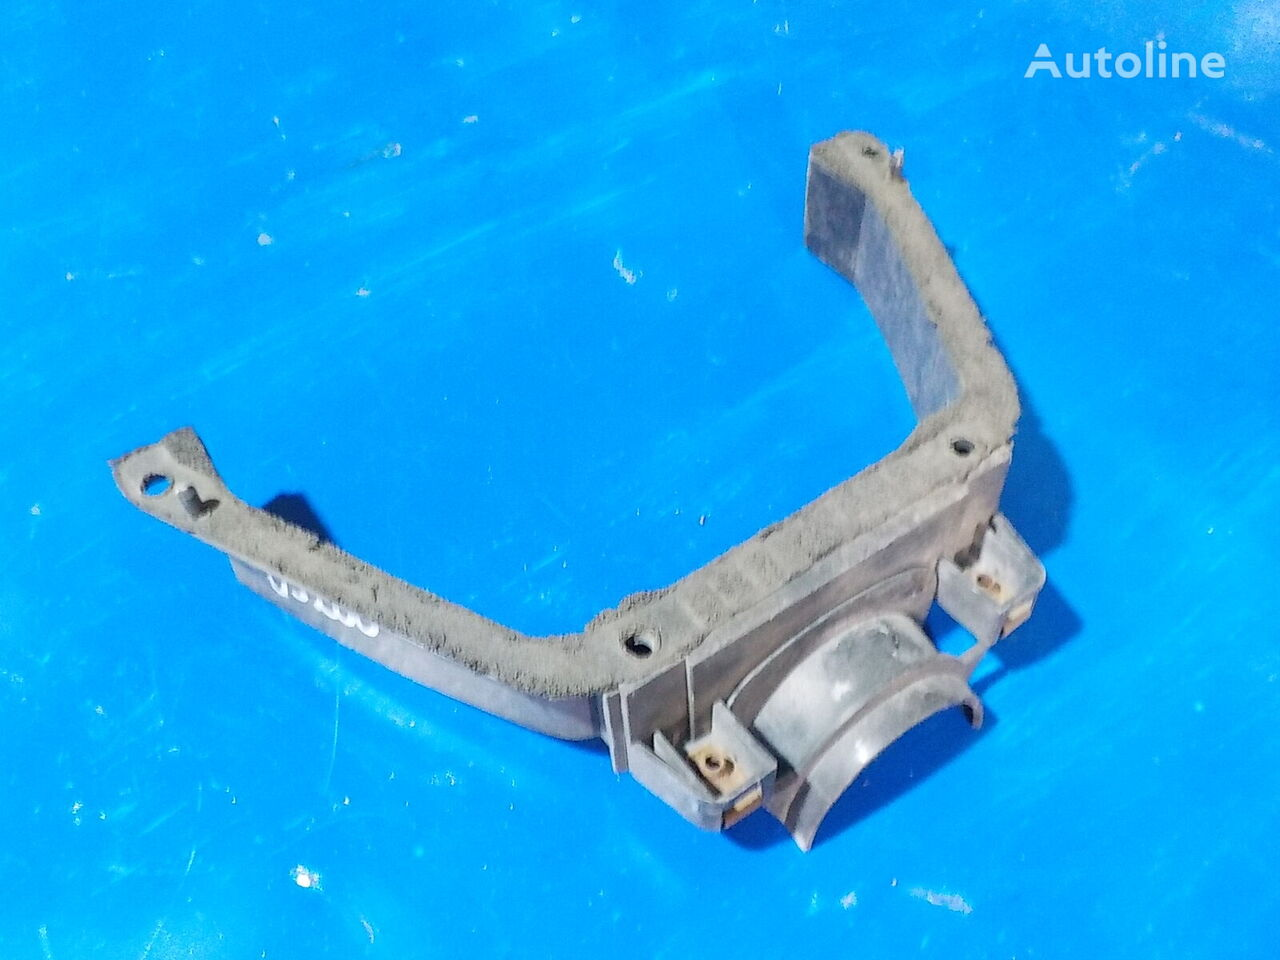 Perehodnik Scania spare parts for truck